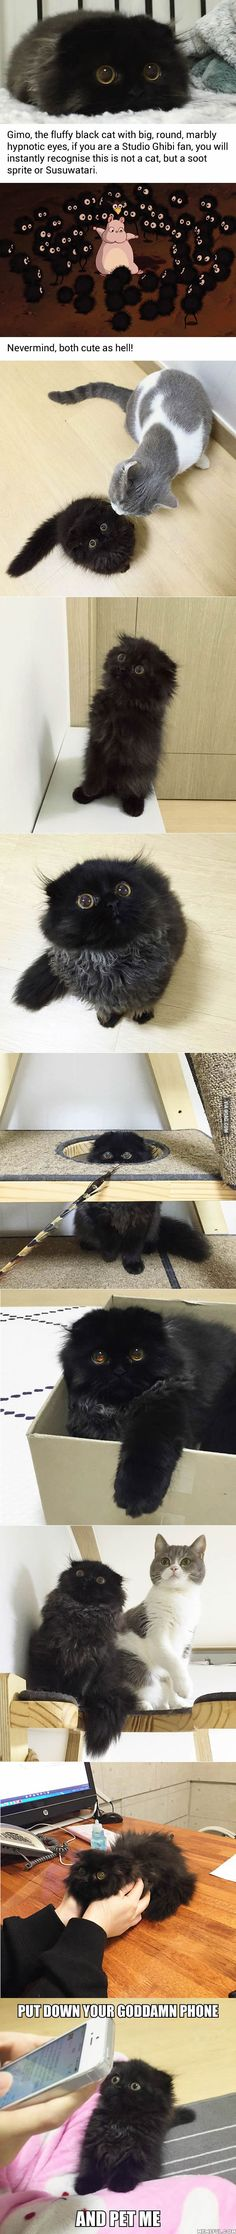 This Giant-Eyed Cat Looks Like Studio Ghibli's Soot Sprite - Disregard bad language last frame!